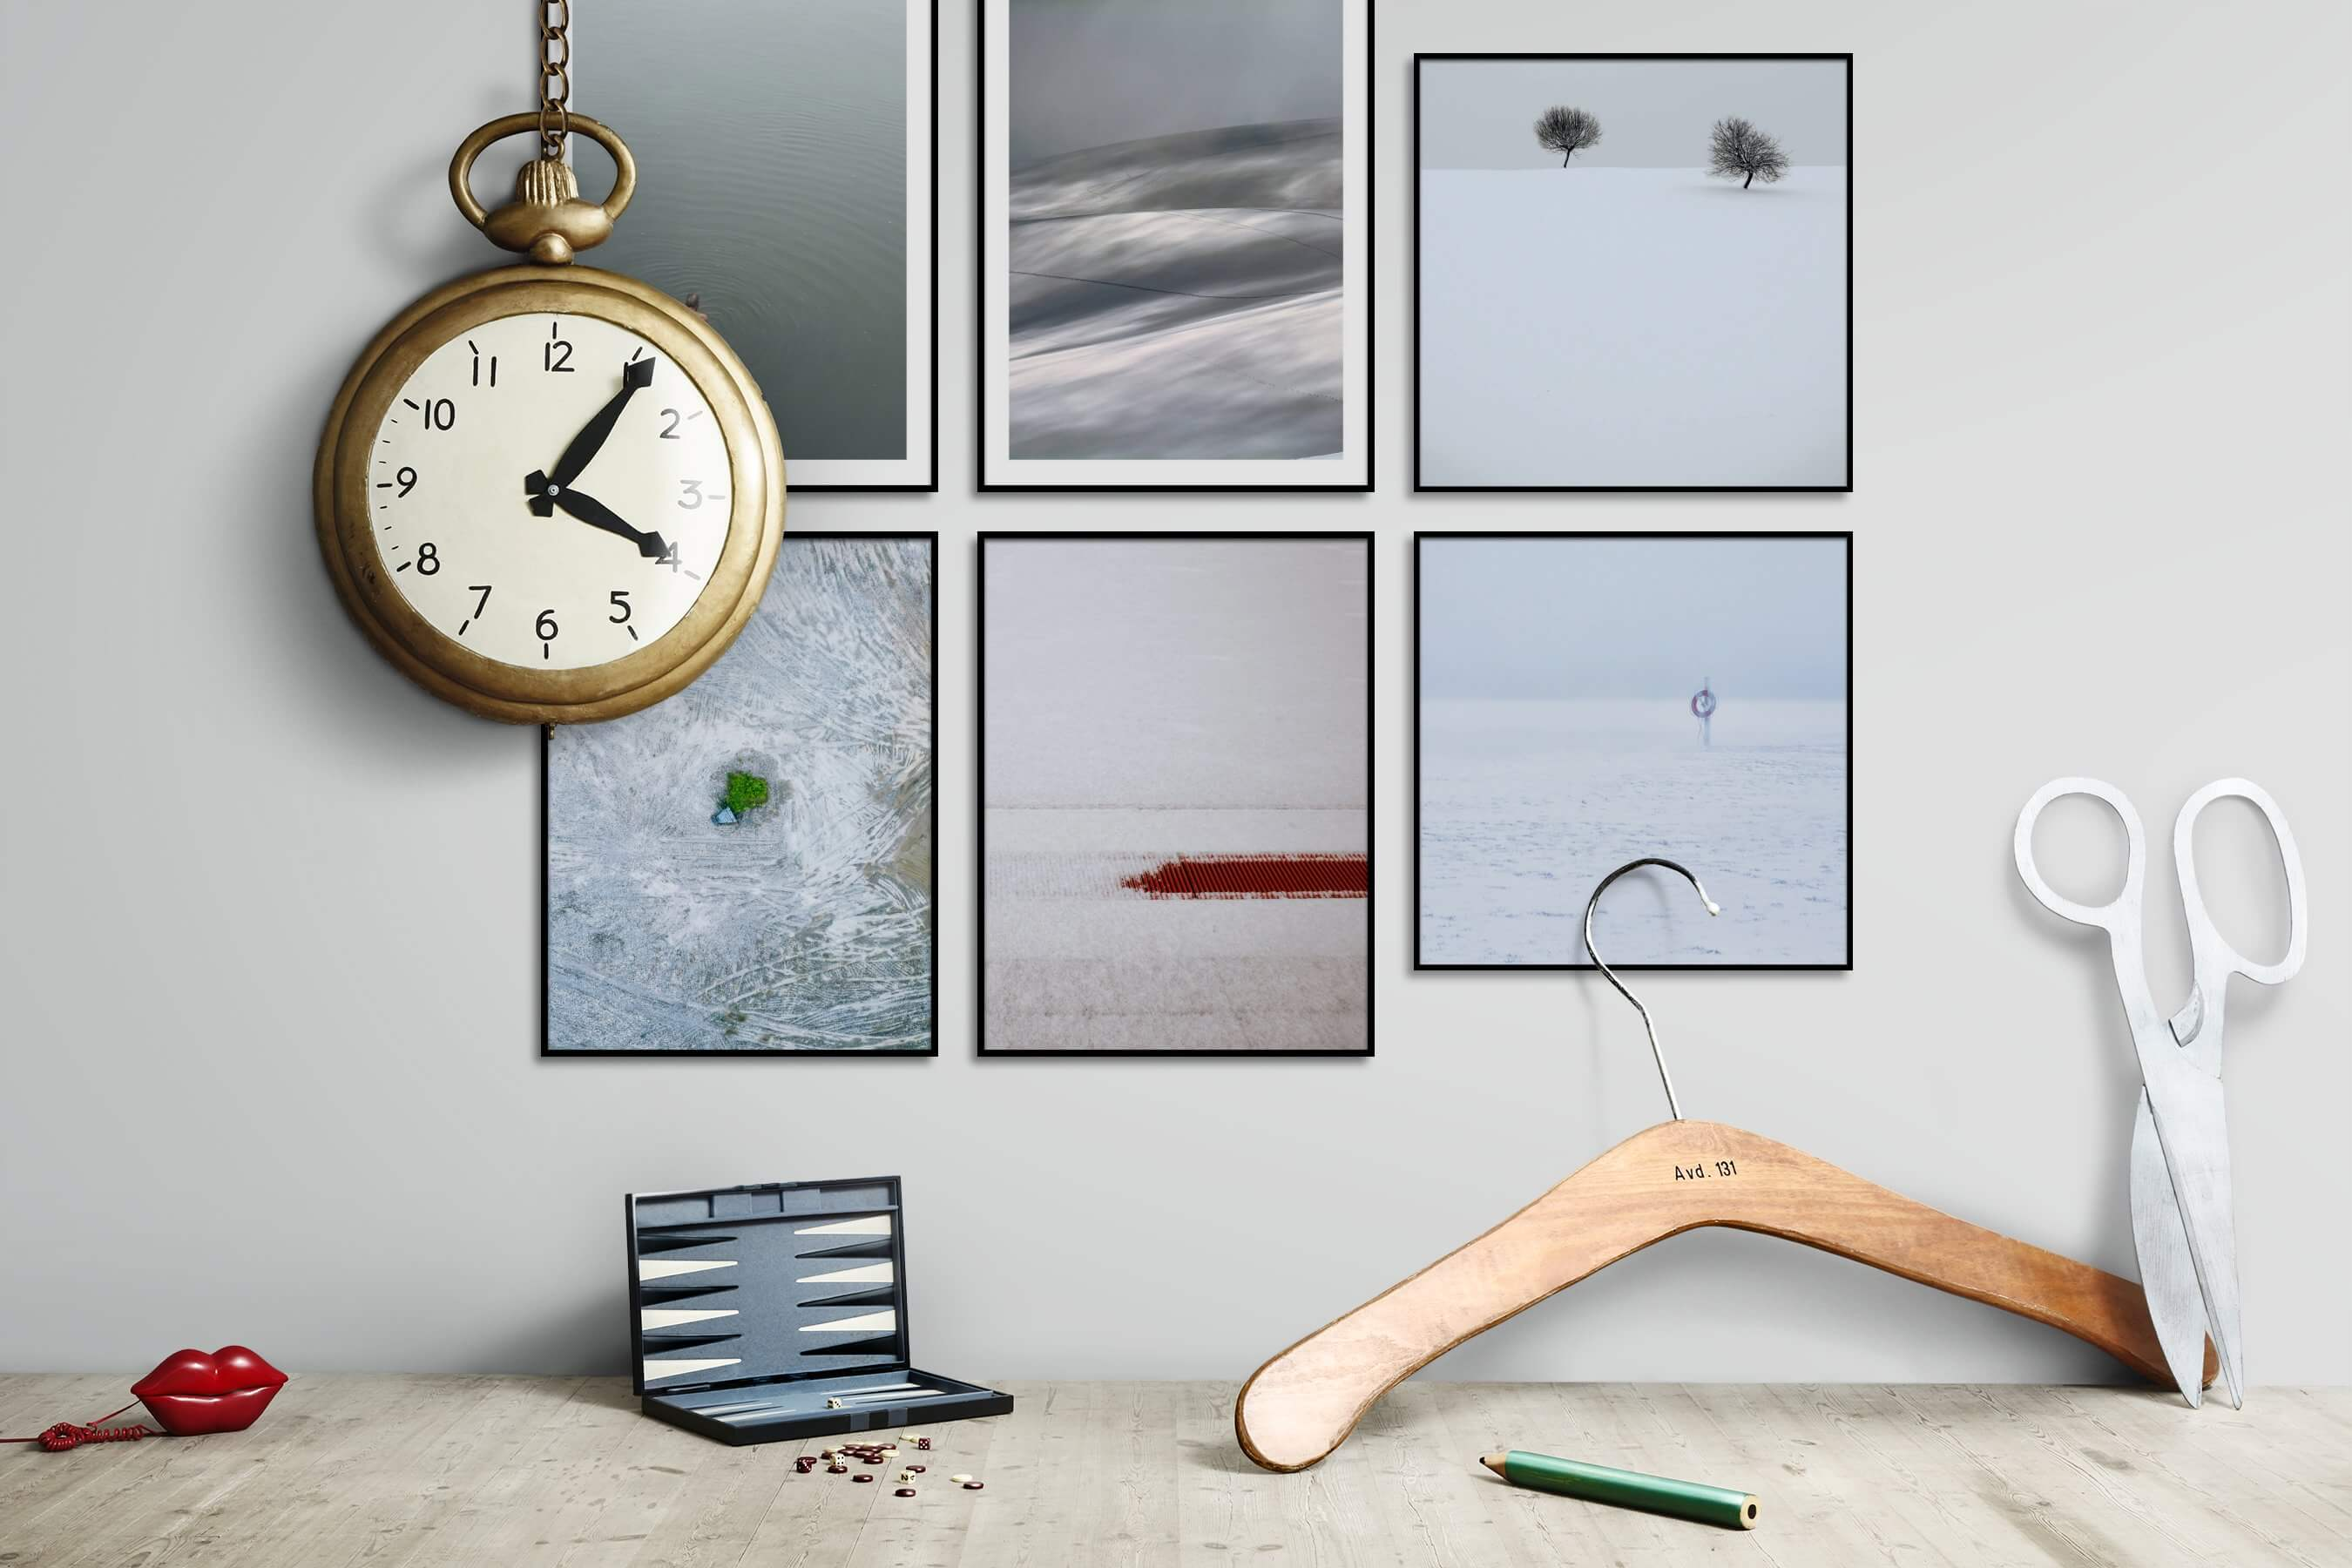 Gallery wall idea with six framed pictures arranged on a wall depicting For the Minimalist, Beach & Water, Mindfulness, Nature, For the Moderate, and Country Life